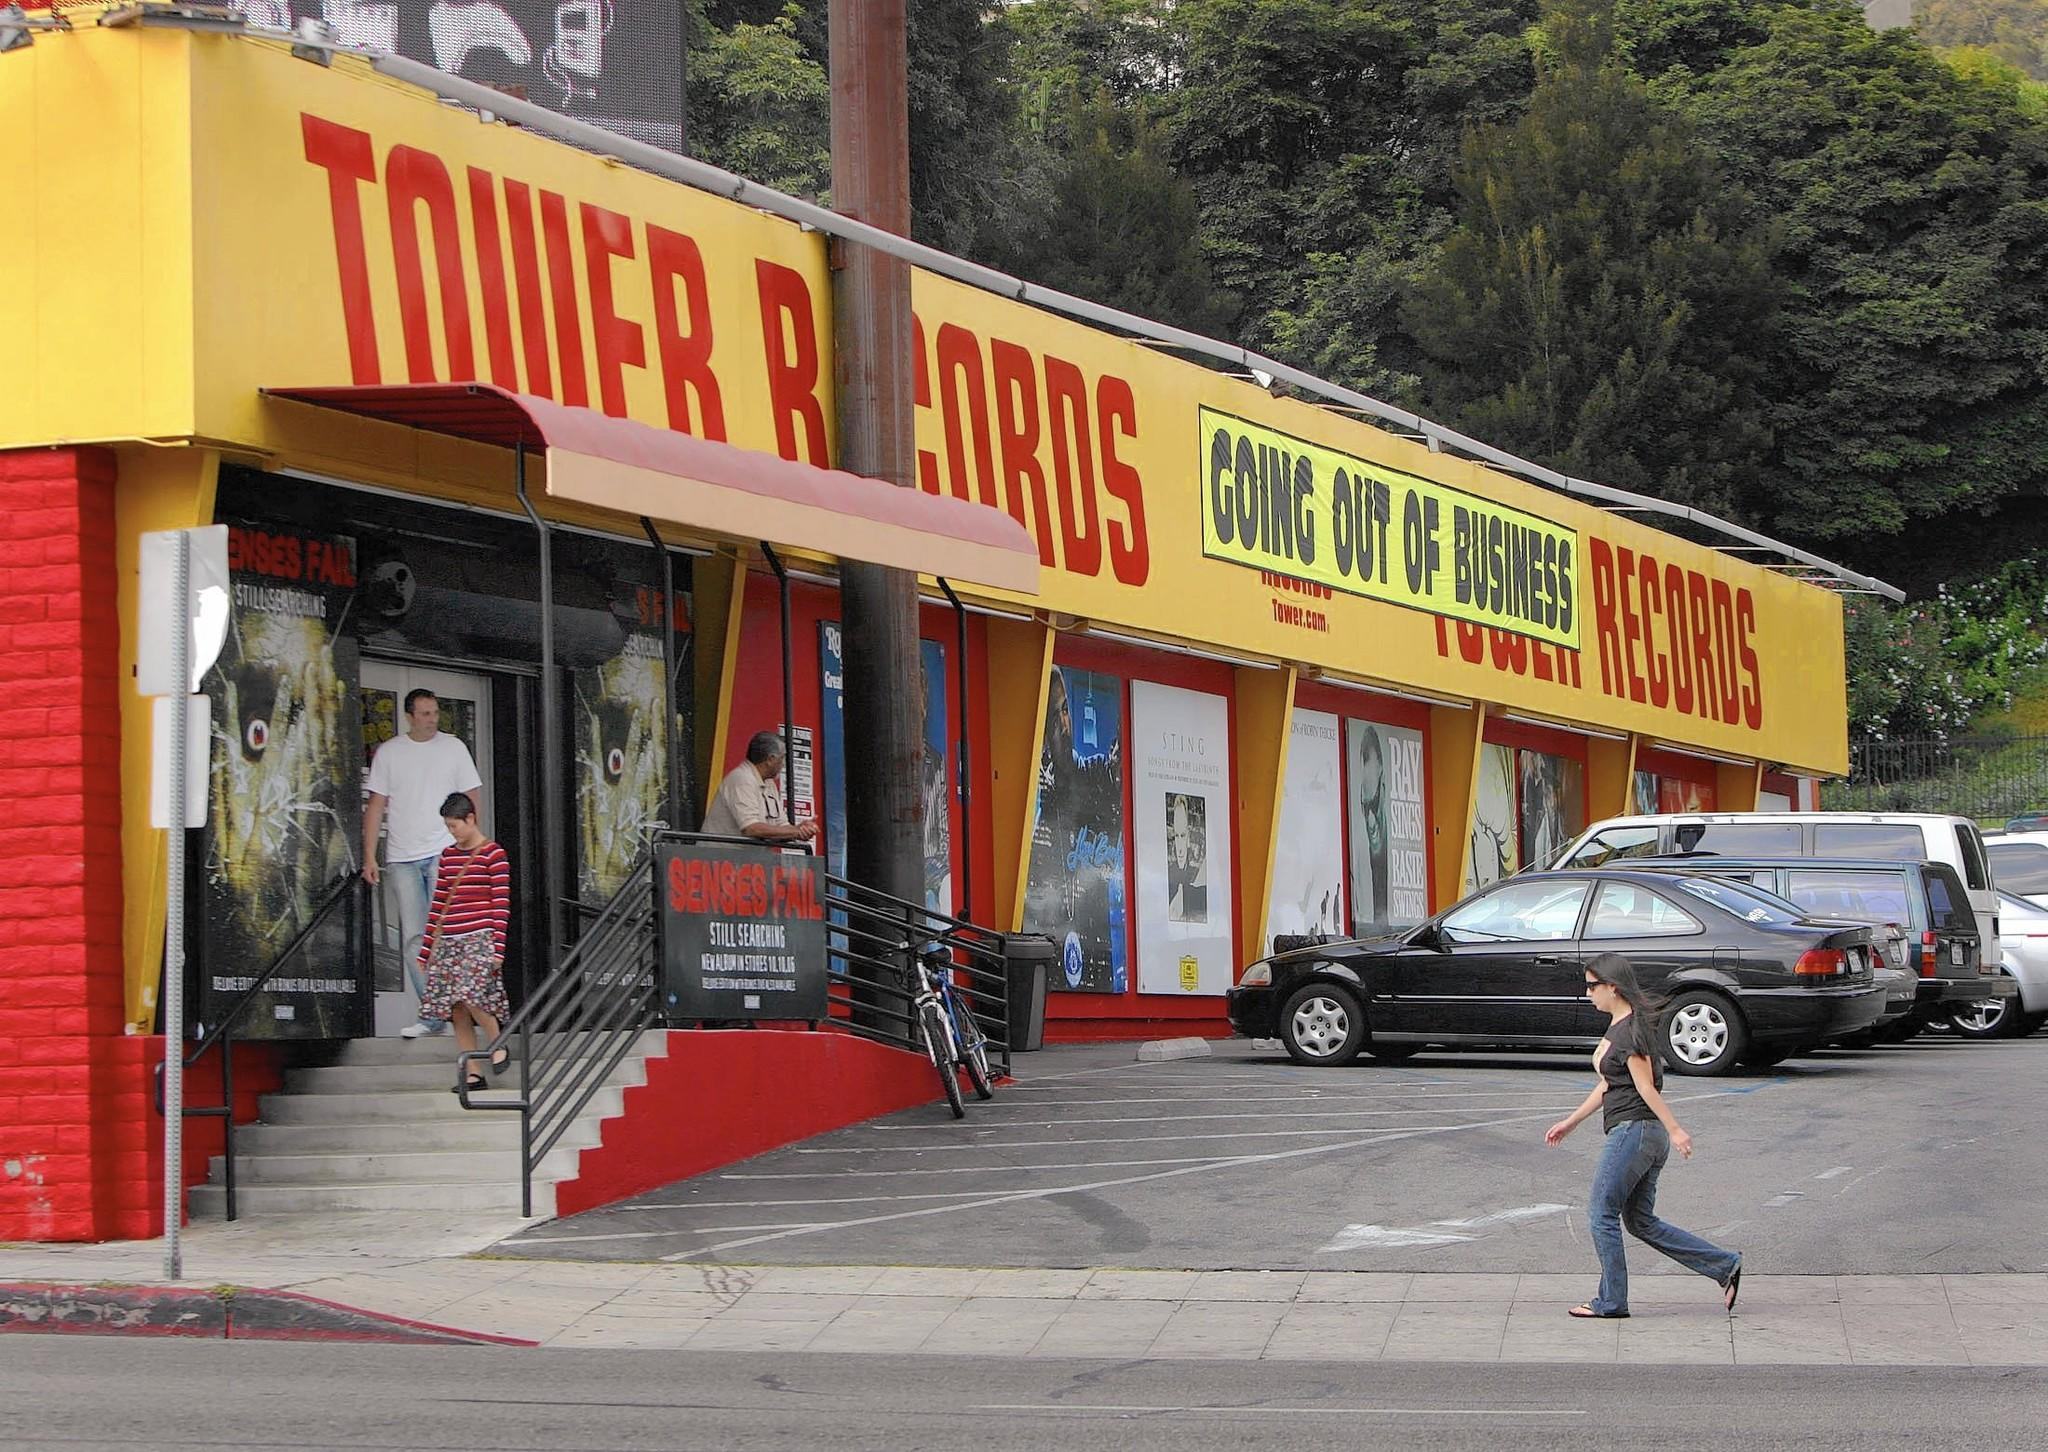 Tower Records in West Hollywood closed in 2006. (Richard Hartog / Los Angeles Times)